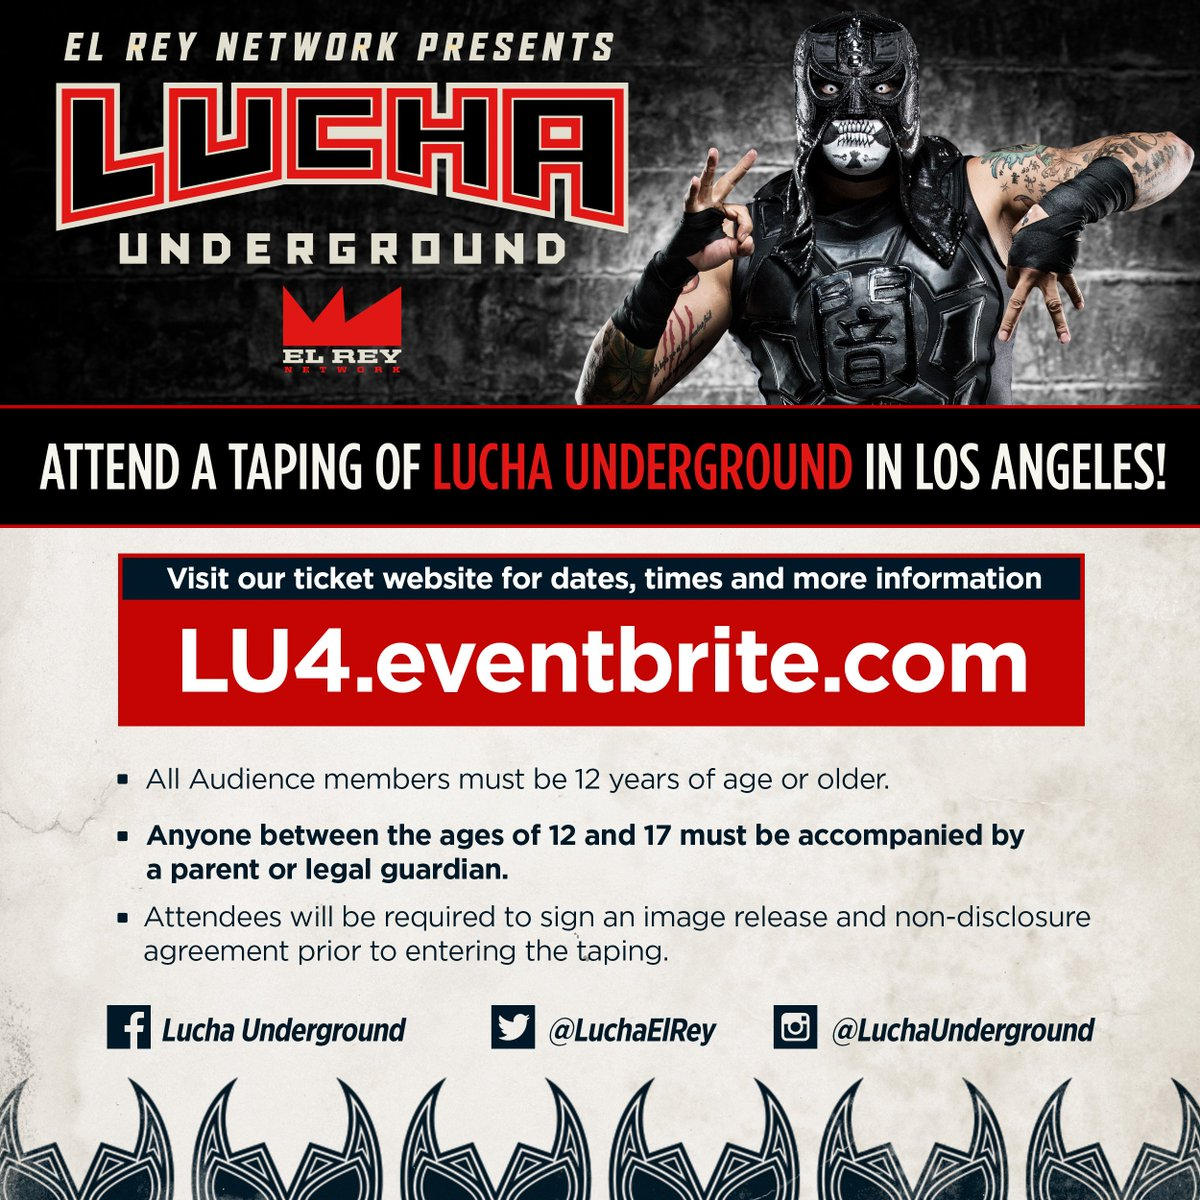 Lucha Underground (@LuchaElRey) on Twitter photo 2018-02-13 23:24:39